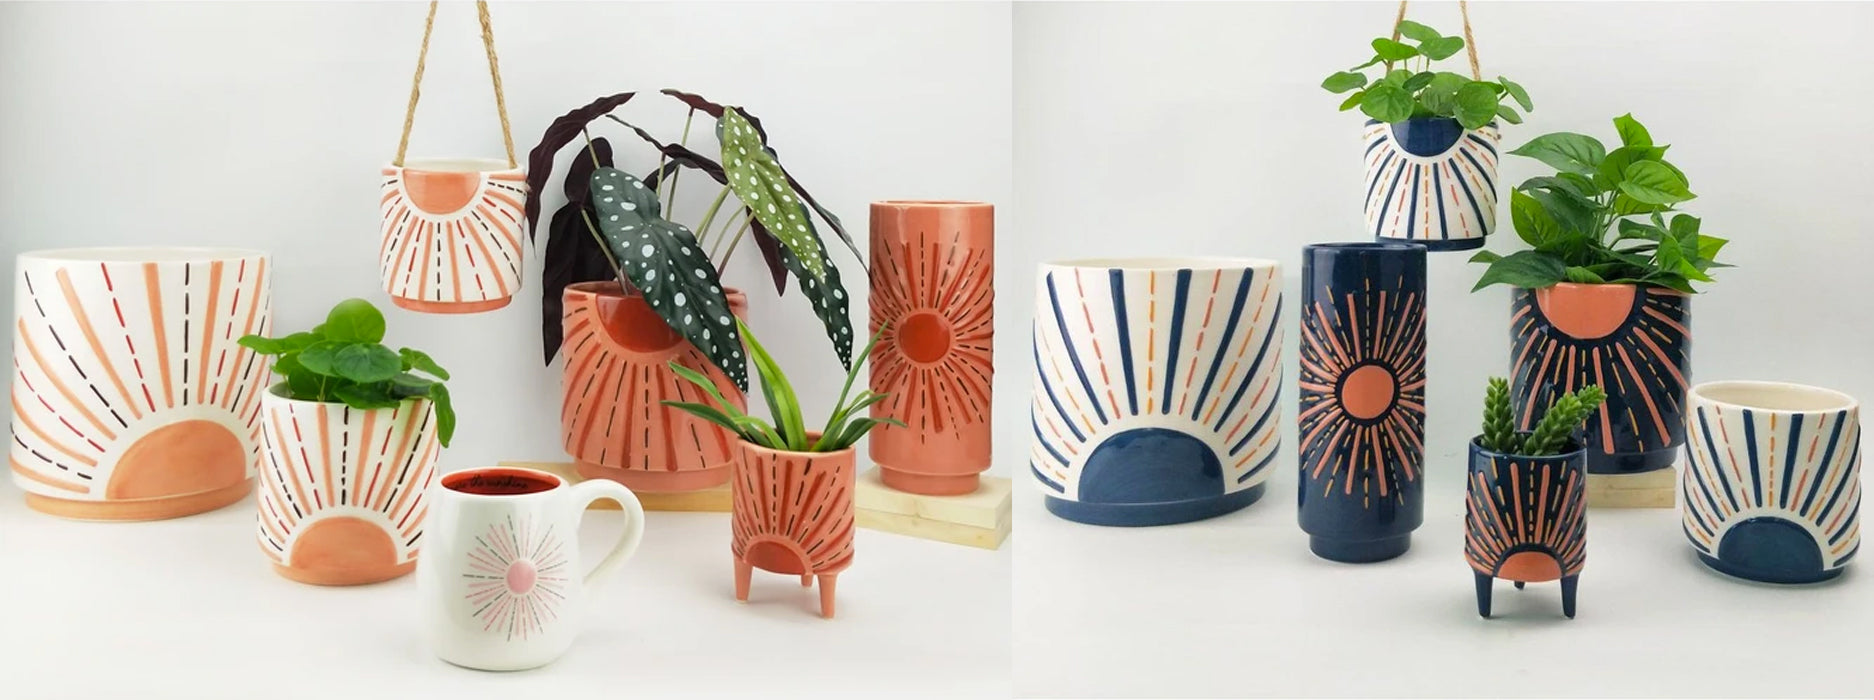 sunshine planter range in blue pink and orange urban products